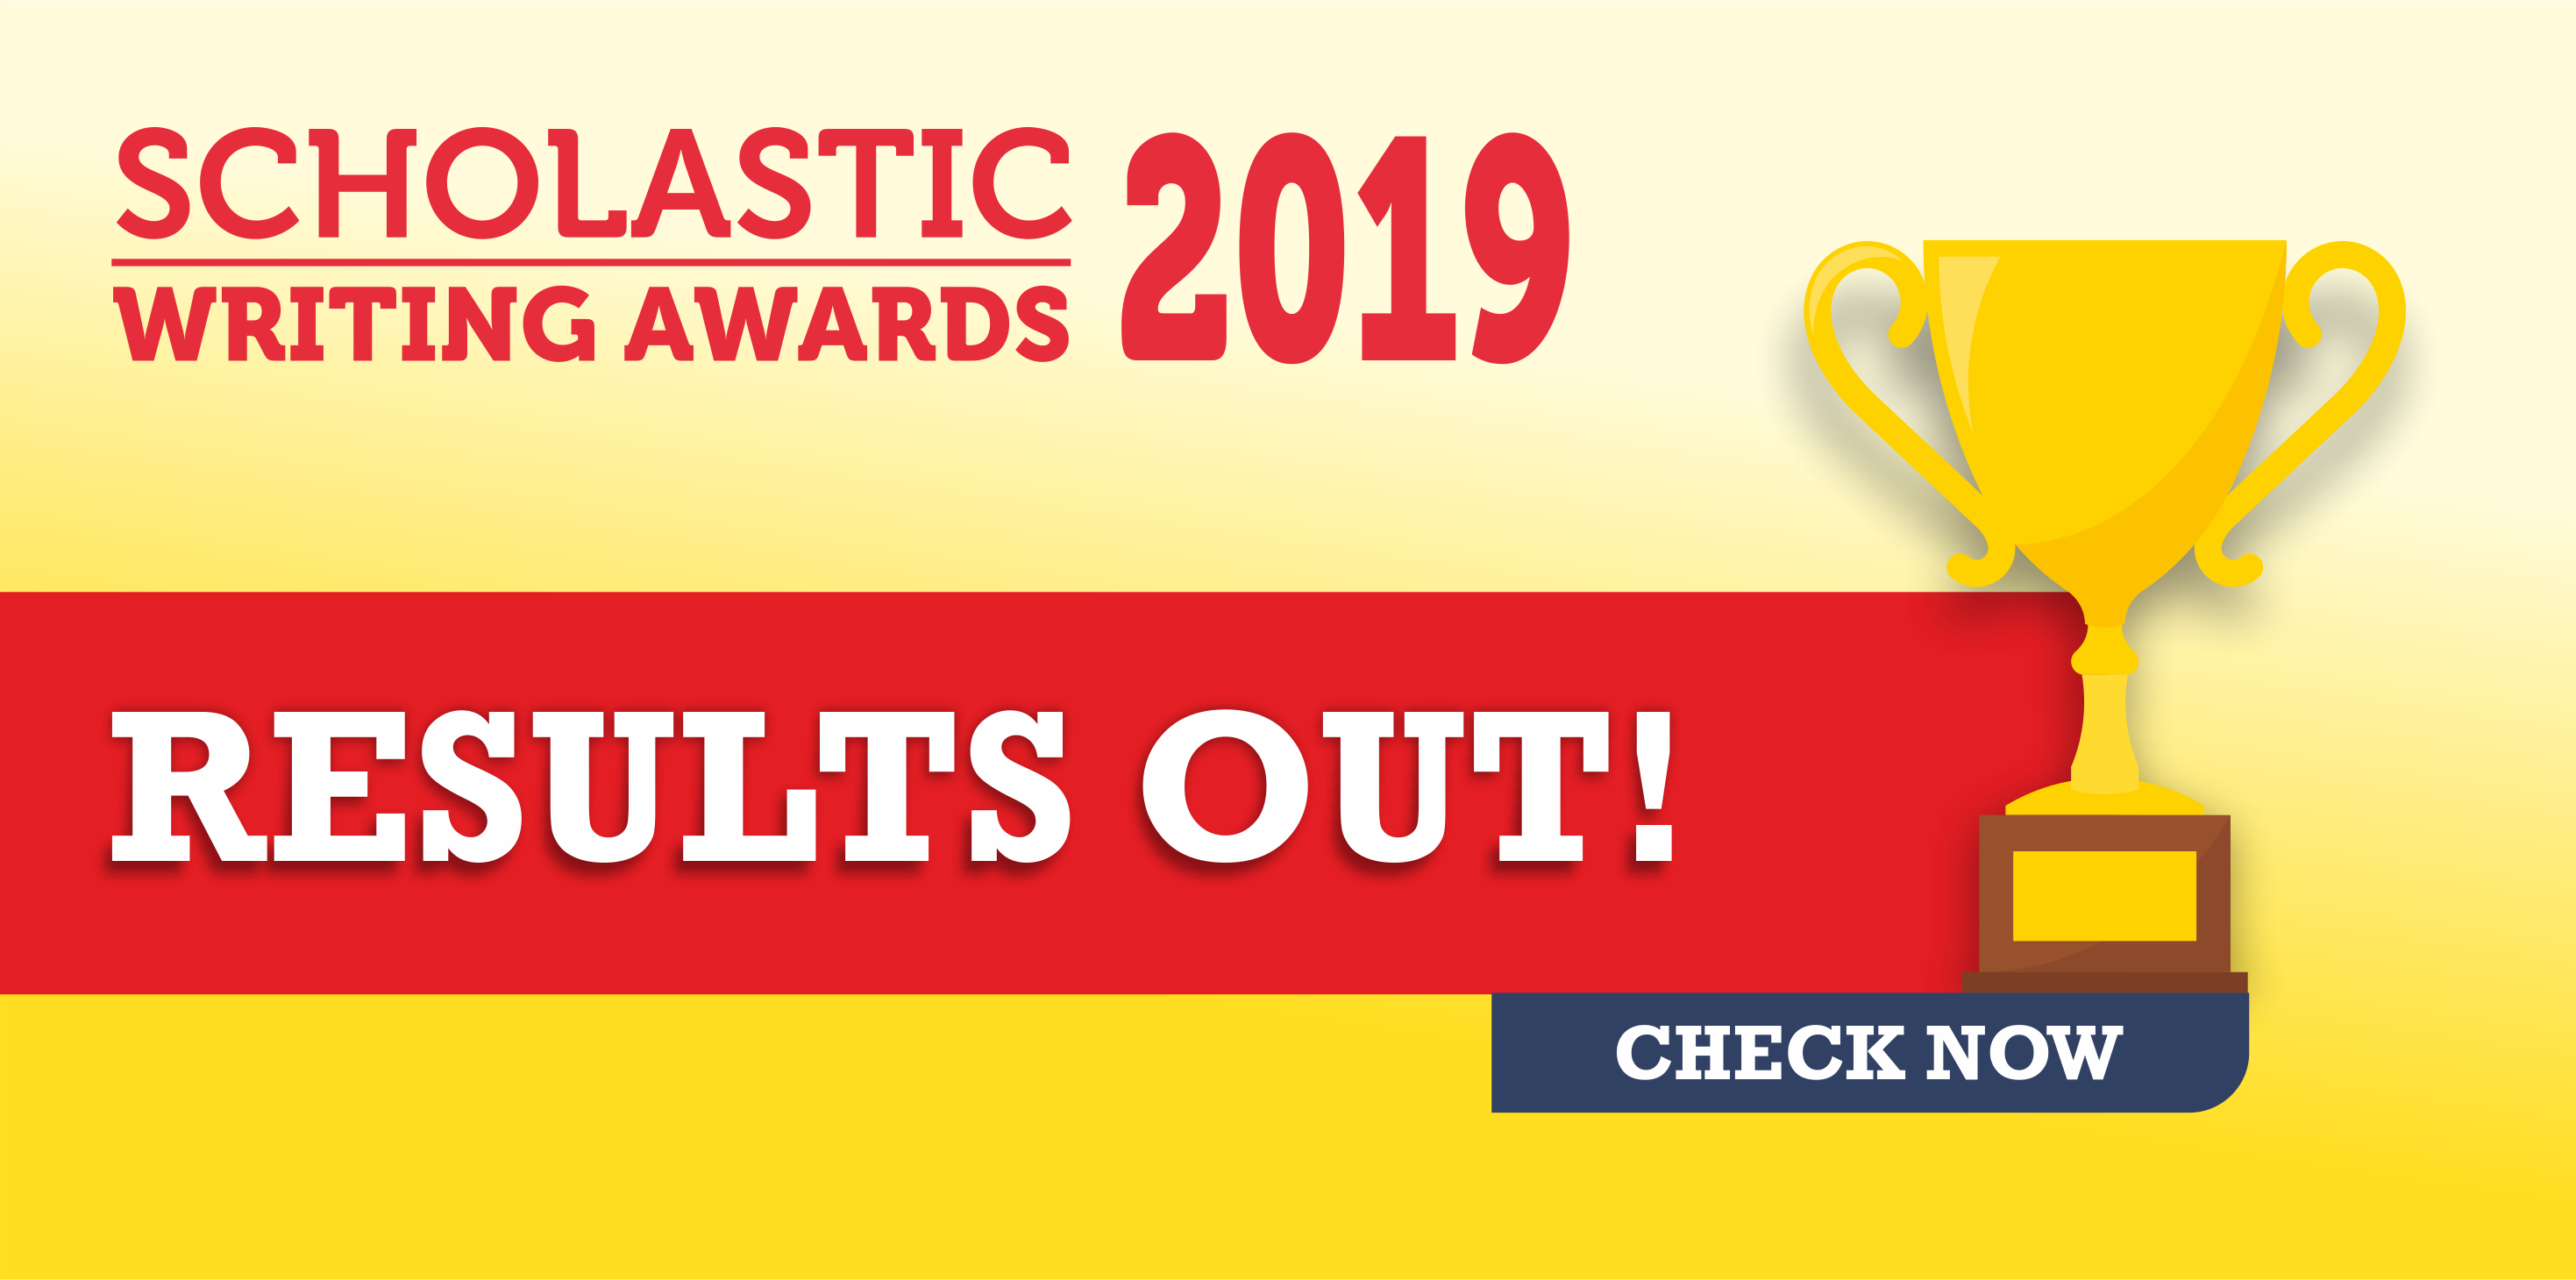 Scholastic Writing Awards 2019